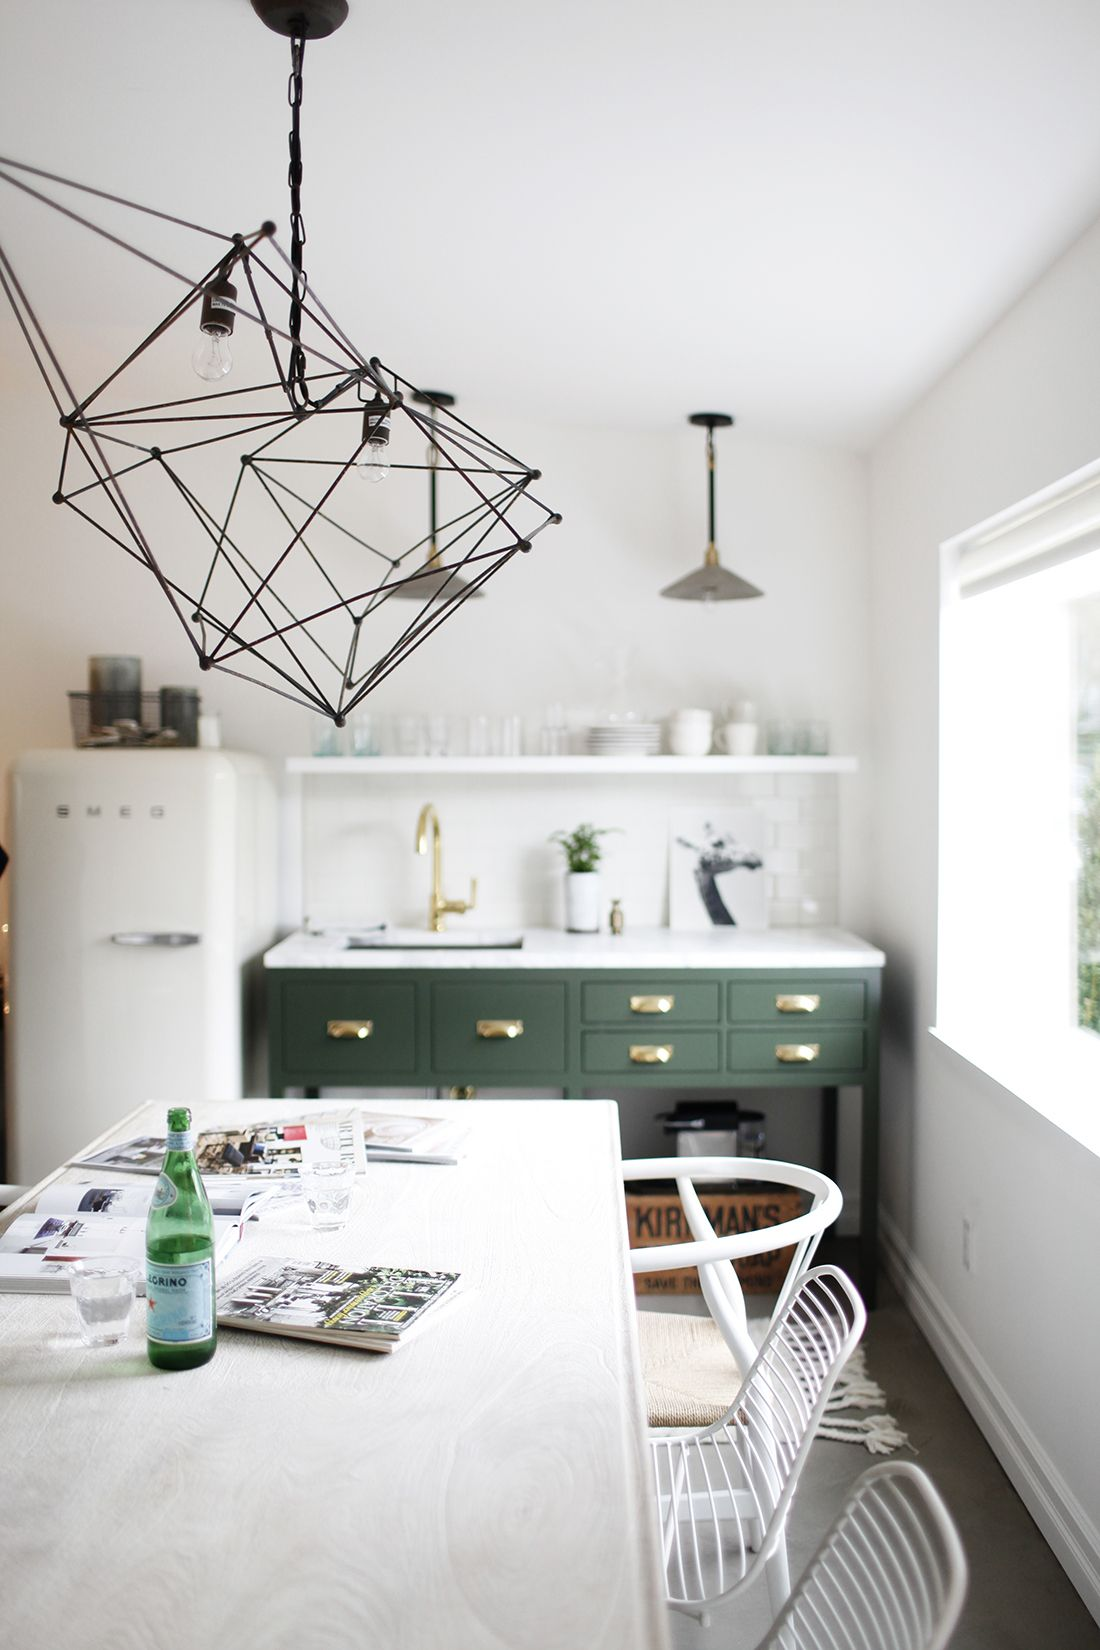 Killer Wire Light Fixtures  Home  Pinterest  Garage Studio Best Light Fixtures For Kitchen Inspiration